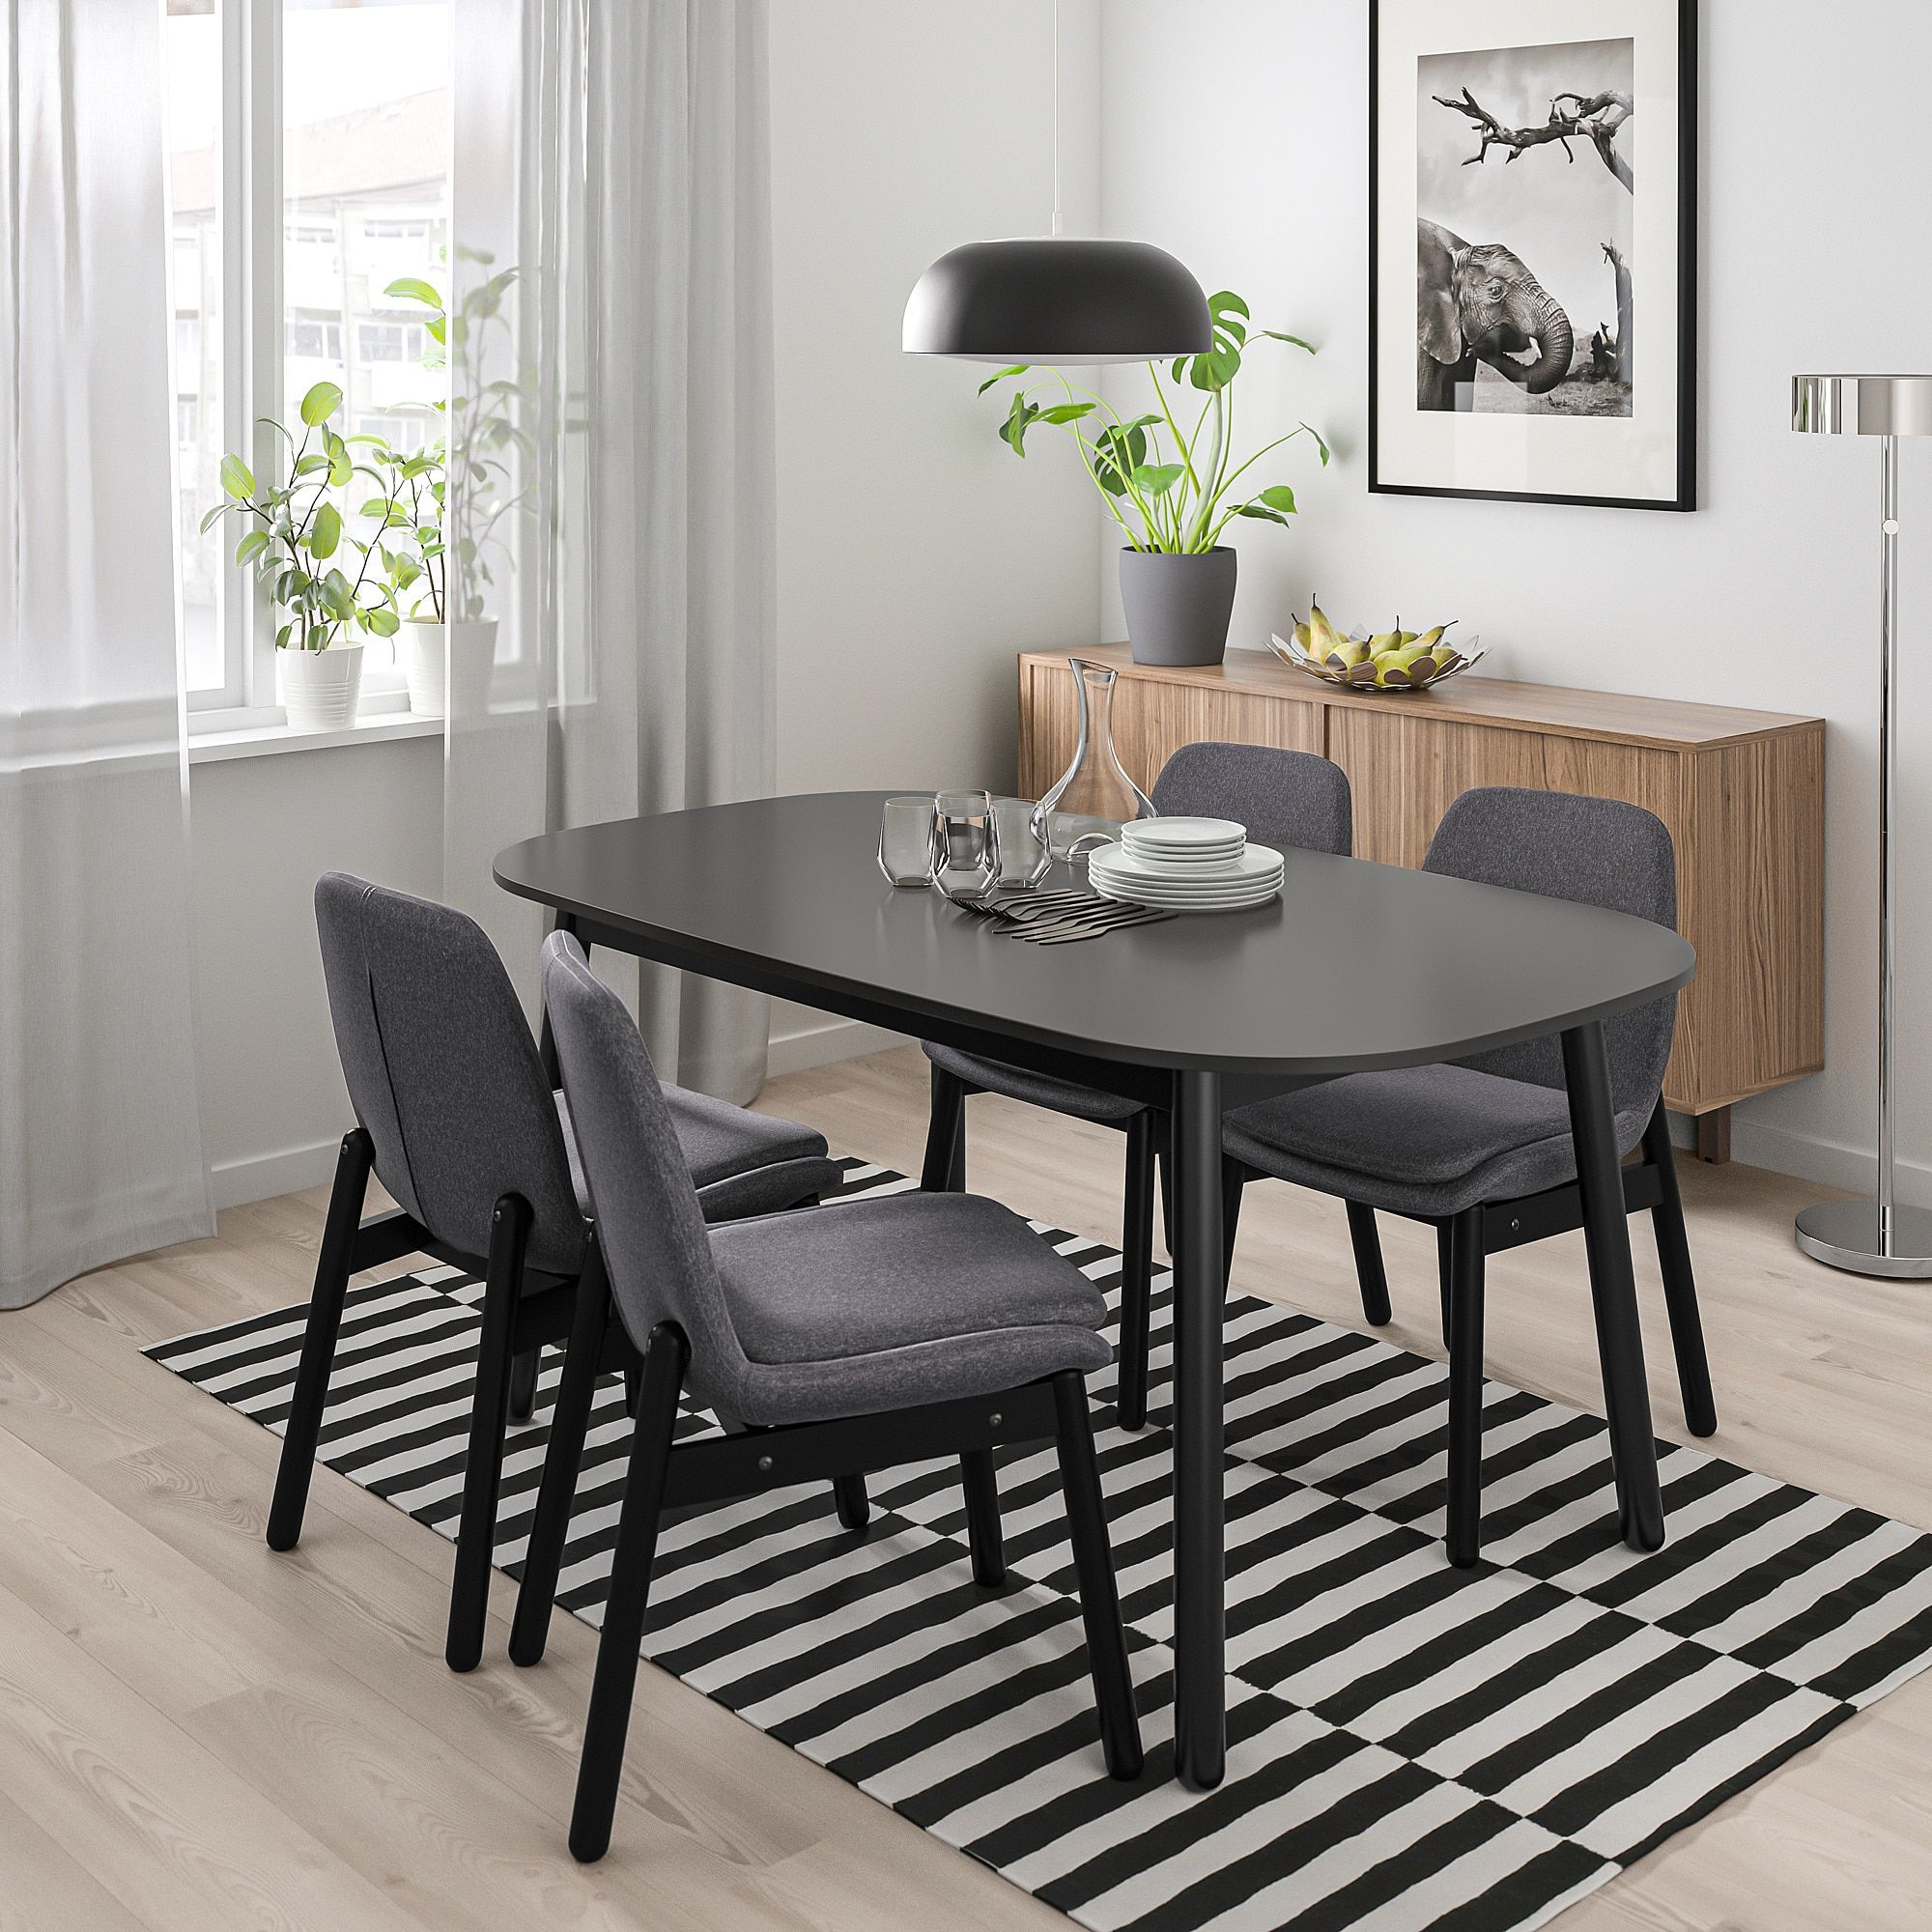 Vedbo Dining Table Black Ikea In 2021 Dining Table Black Dining Table Dining Room Small